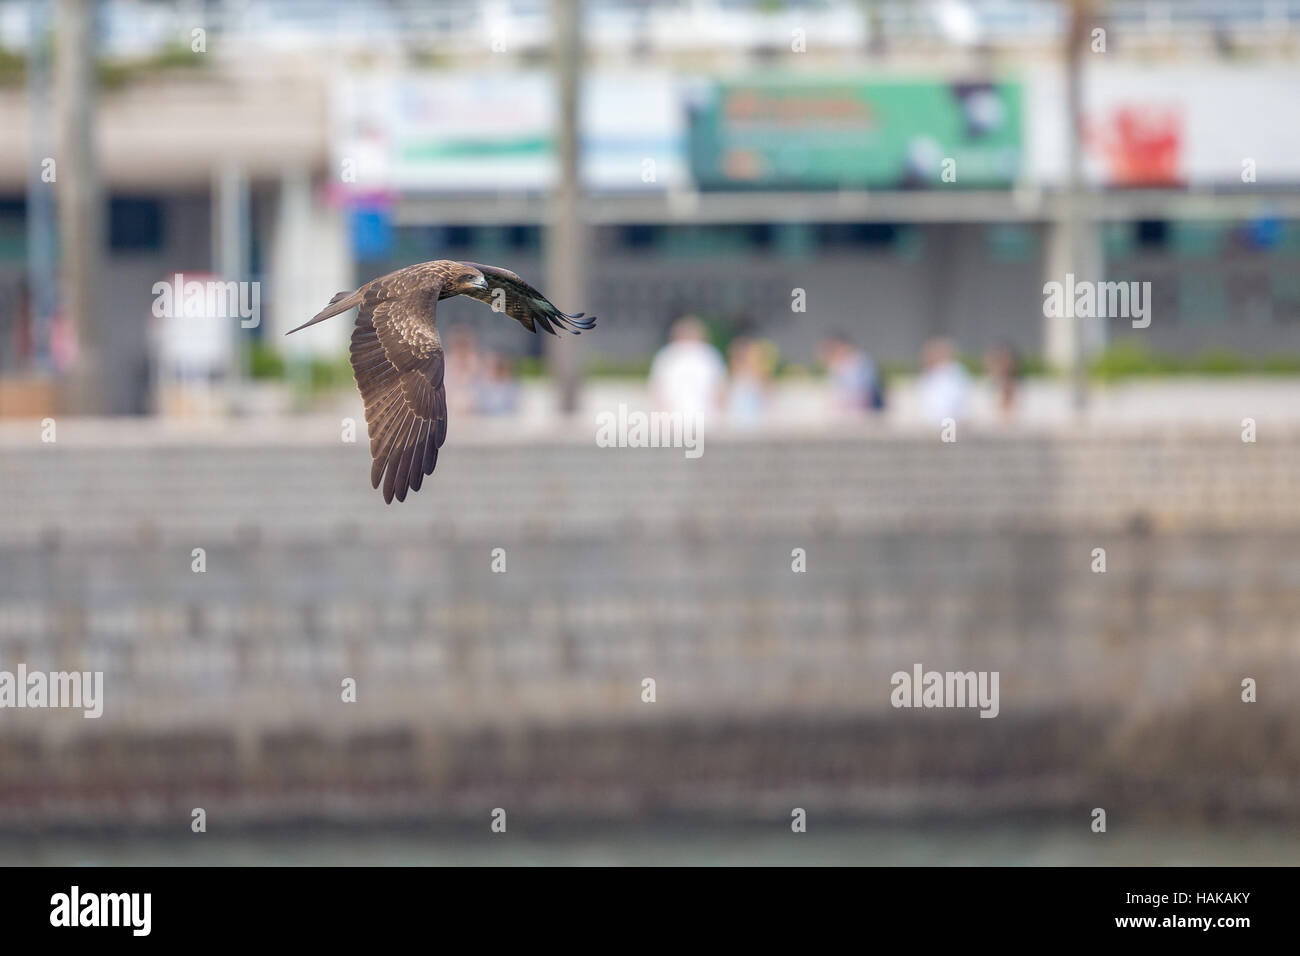 Black Kite  (Milvus migrans)  flying in city with blur city background Stock Photo